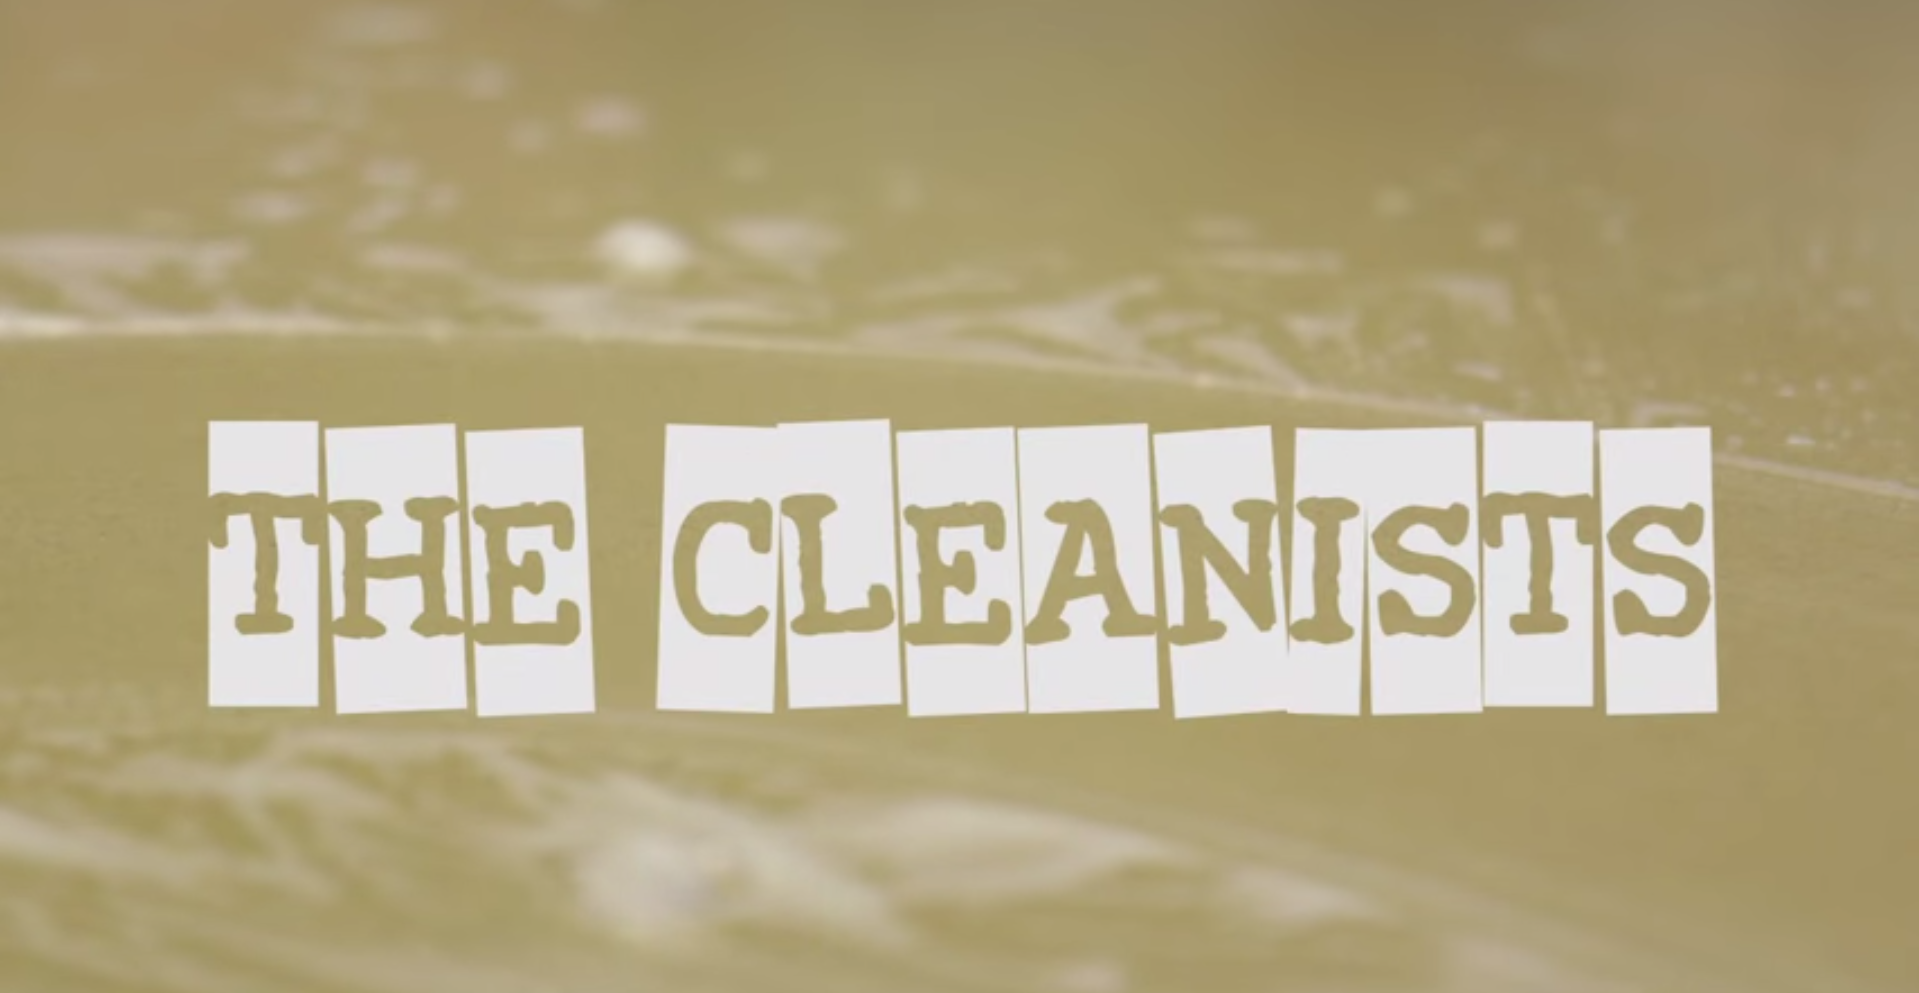 TheCleanistslogo